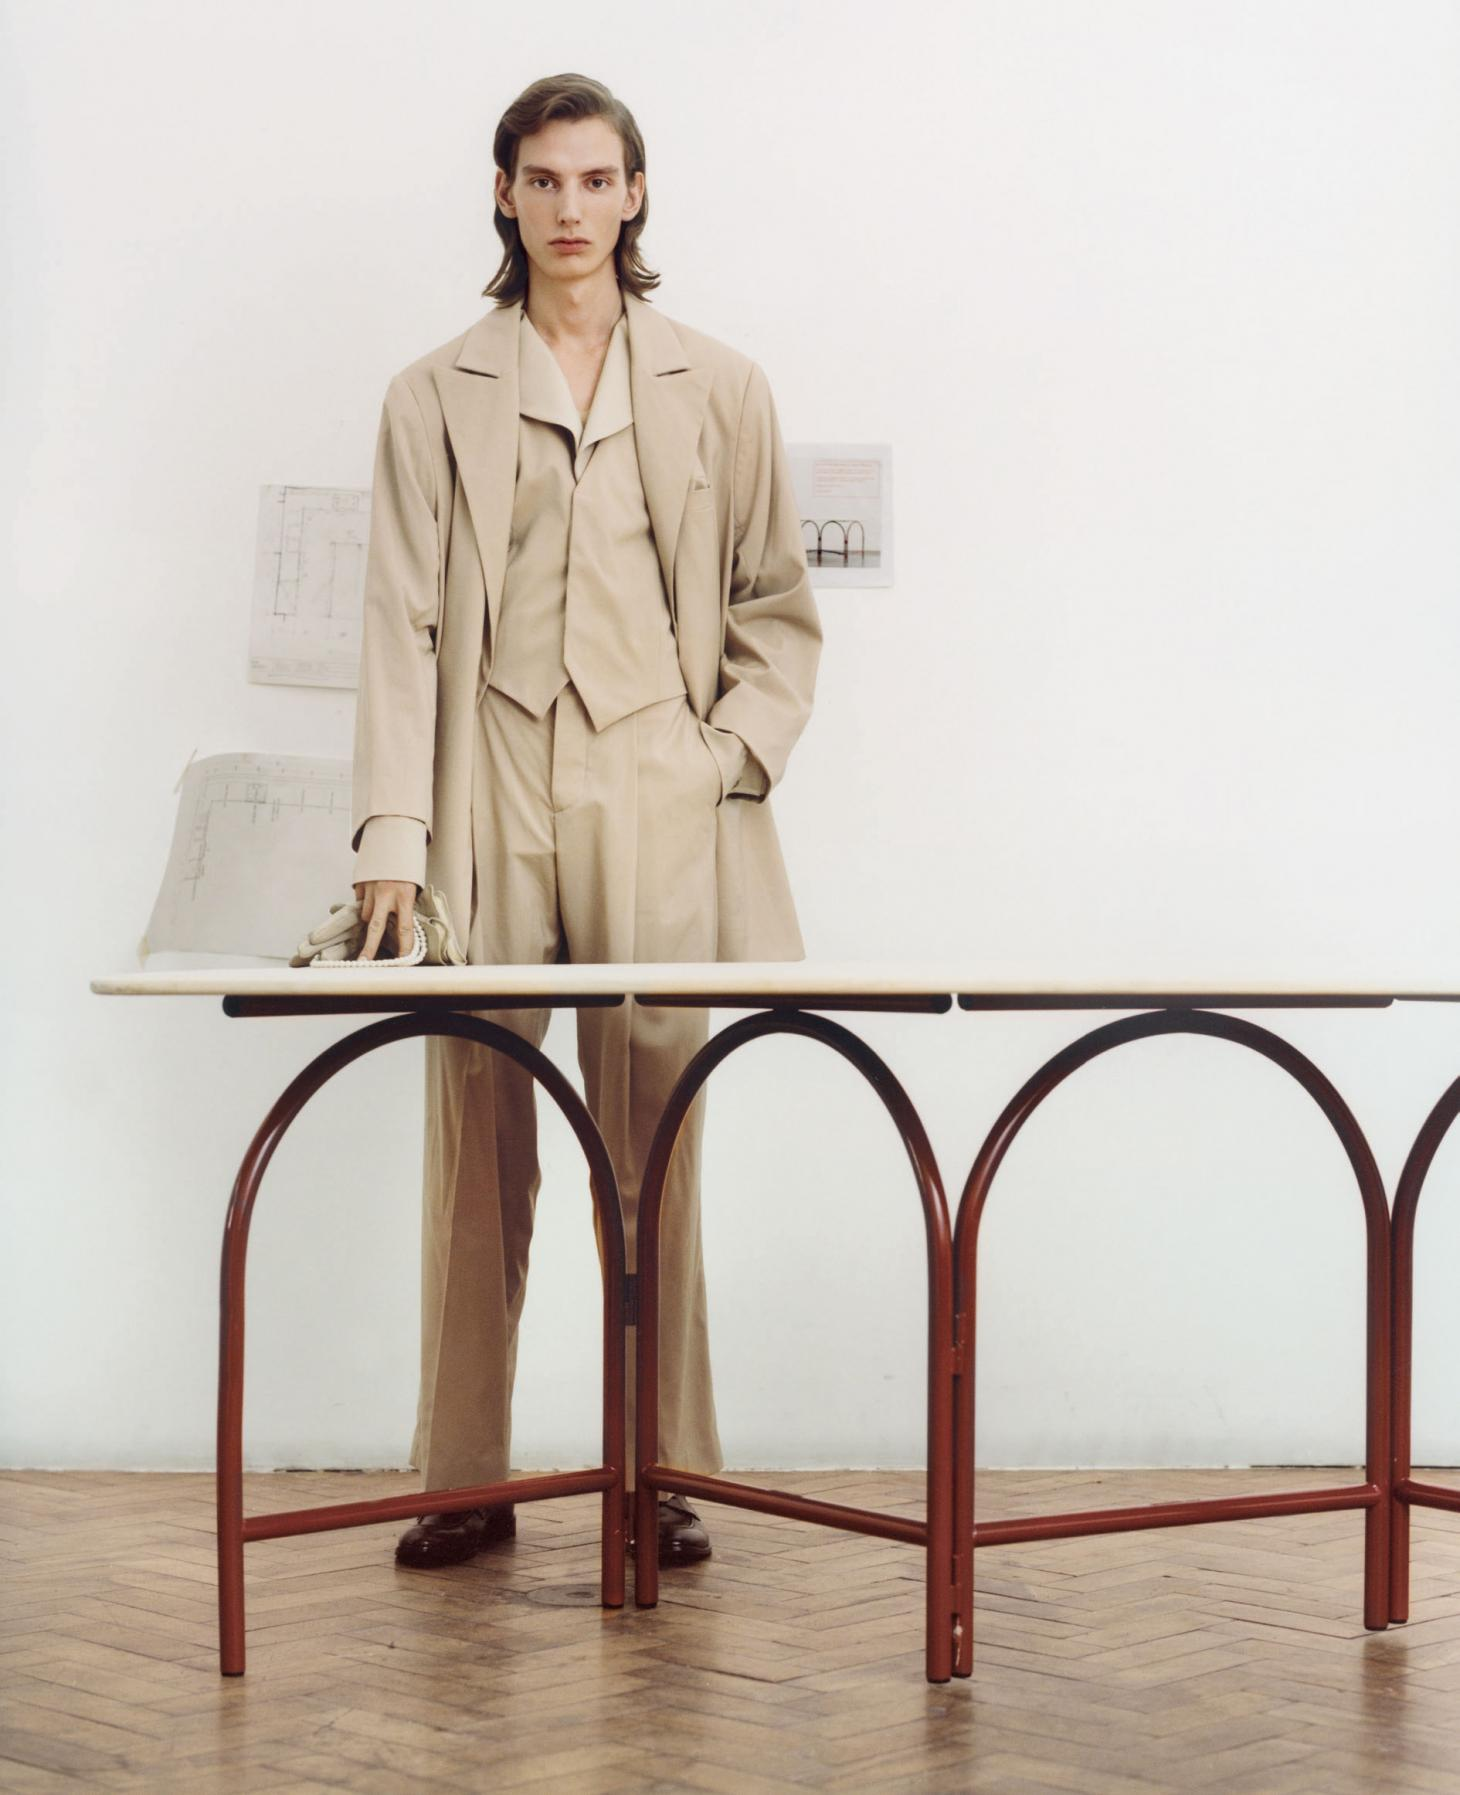 A man stands in beige clothes with his hands across a table